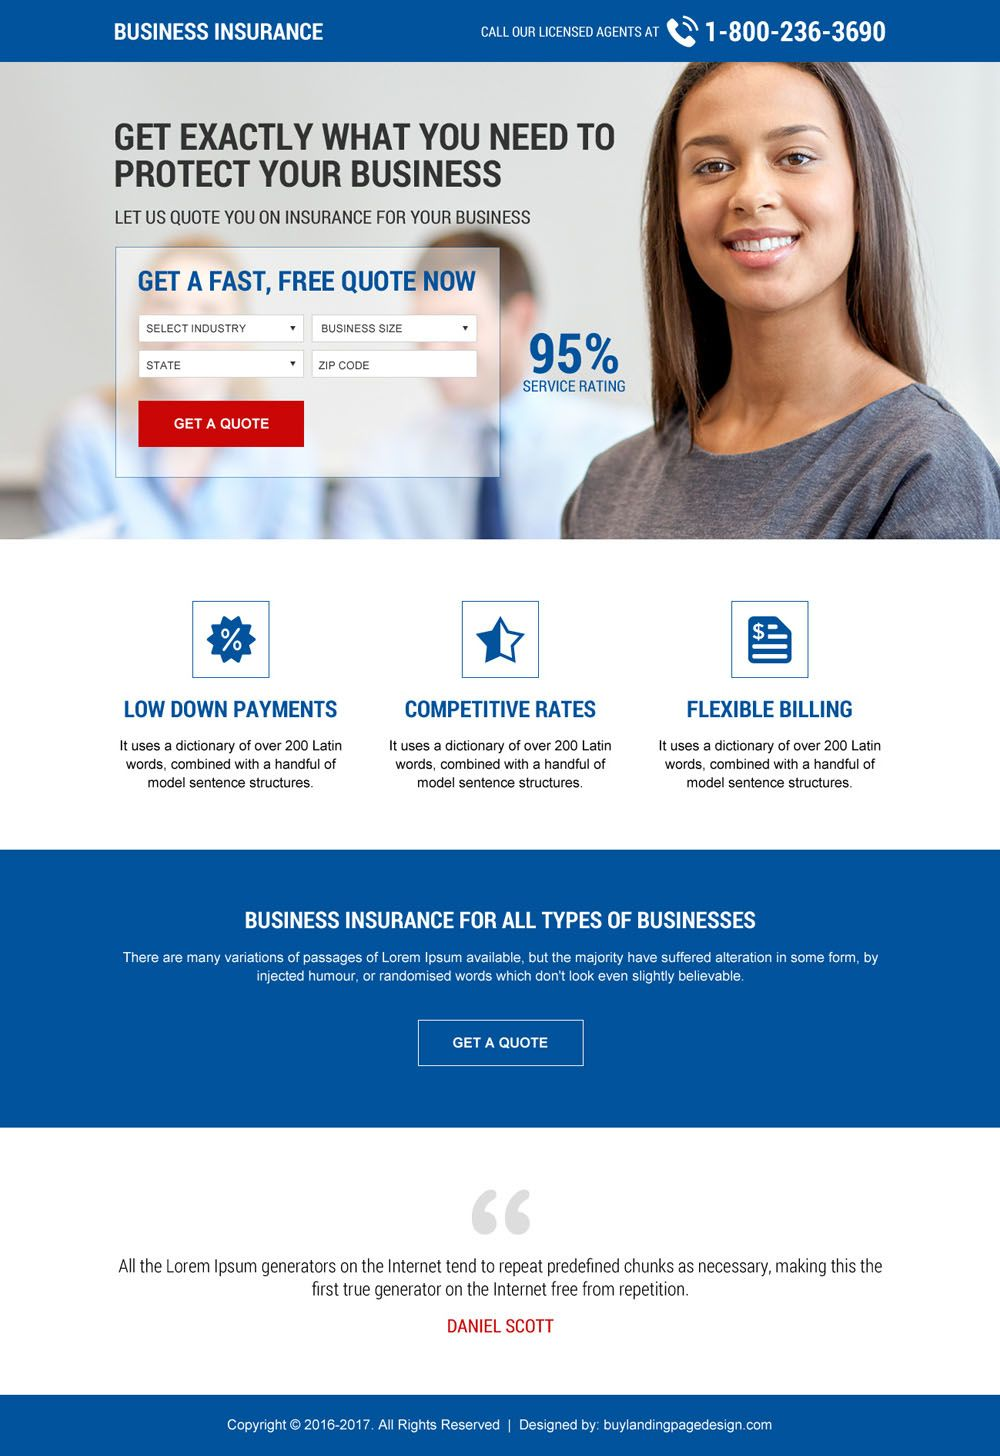 Download Small Business Insurance Landing Page Designs To Capture